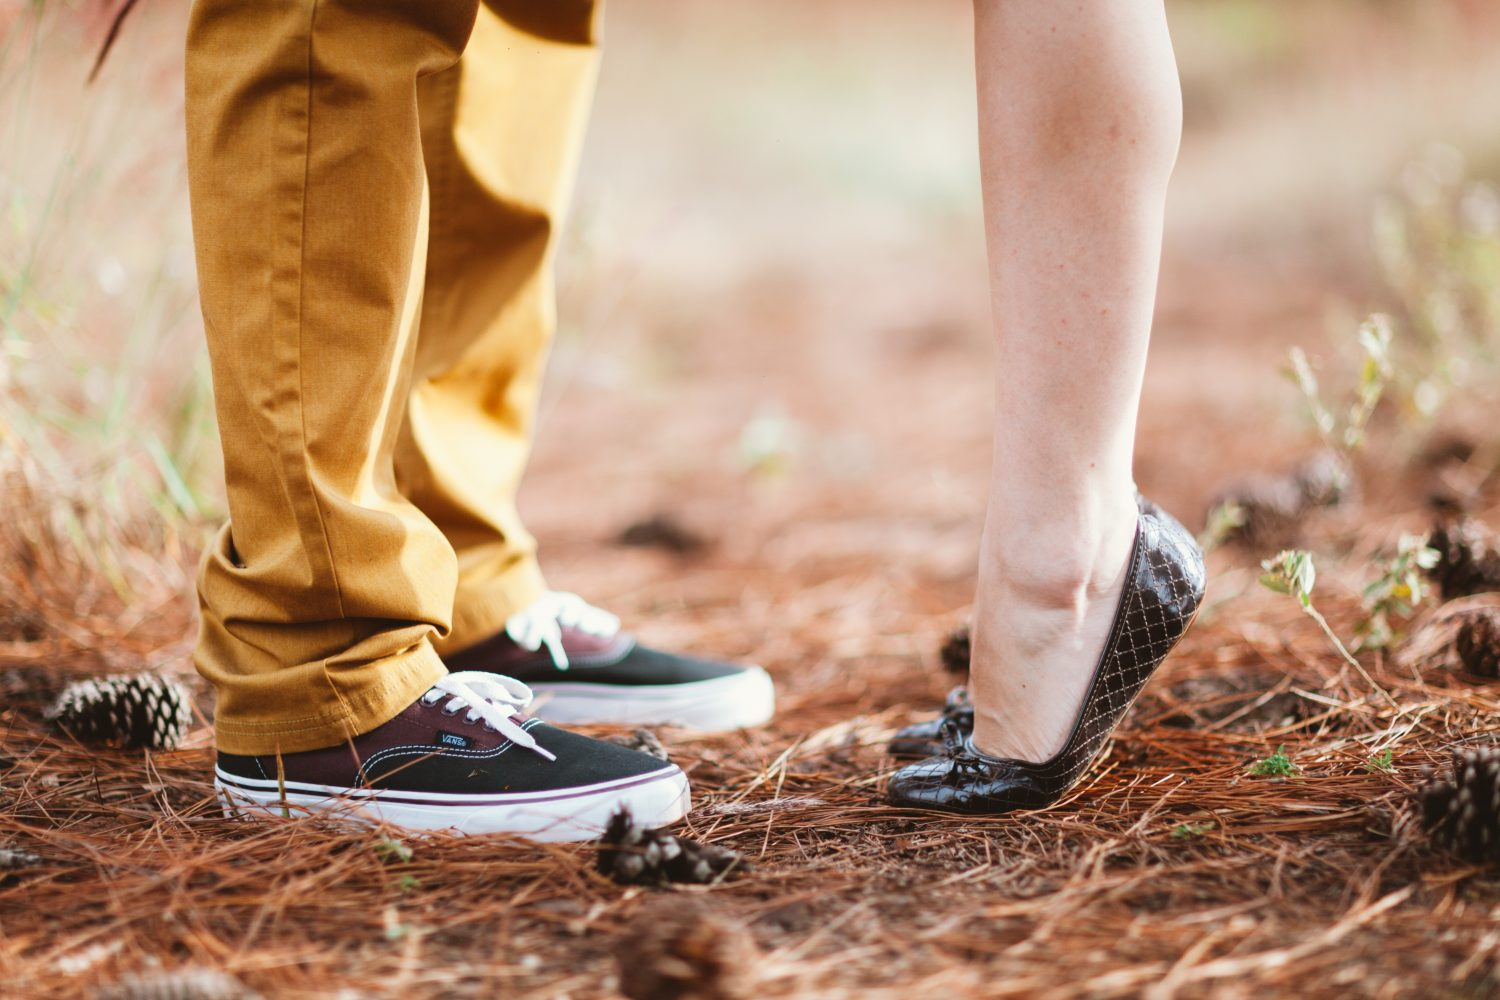 The Happiest Couples Are Made Of Short Women And Tall Men, Shows Study